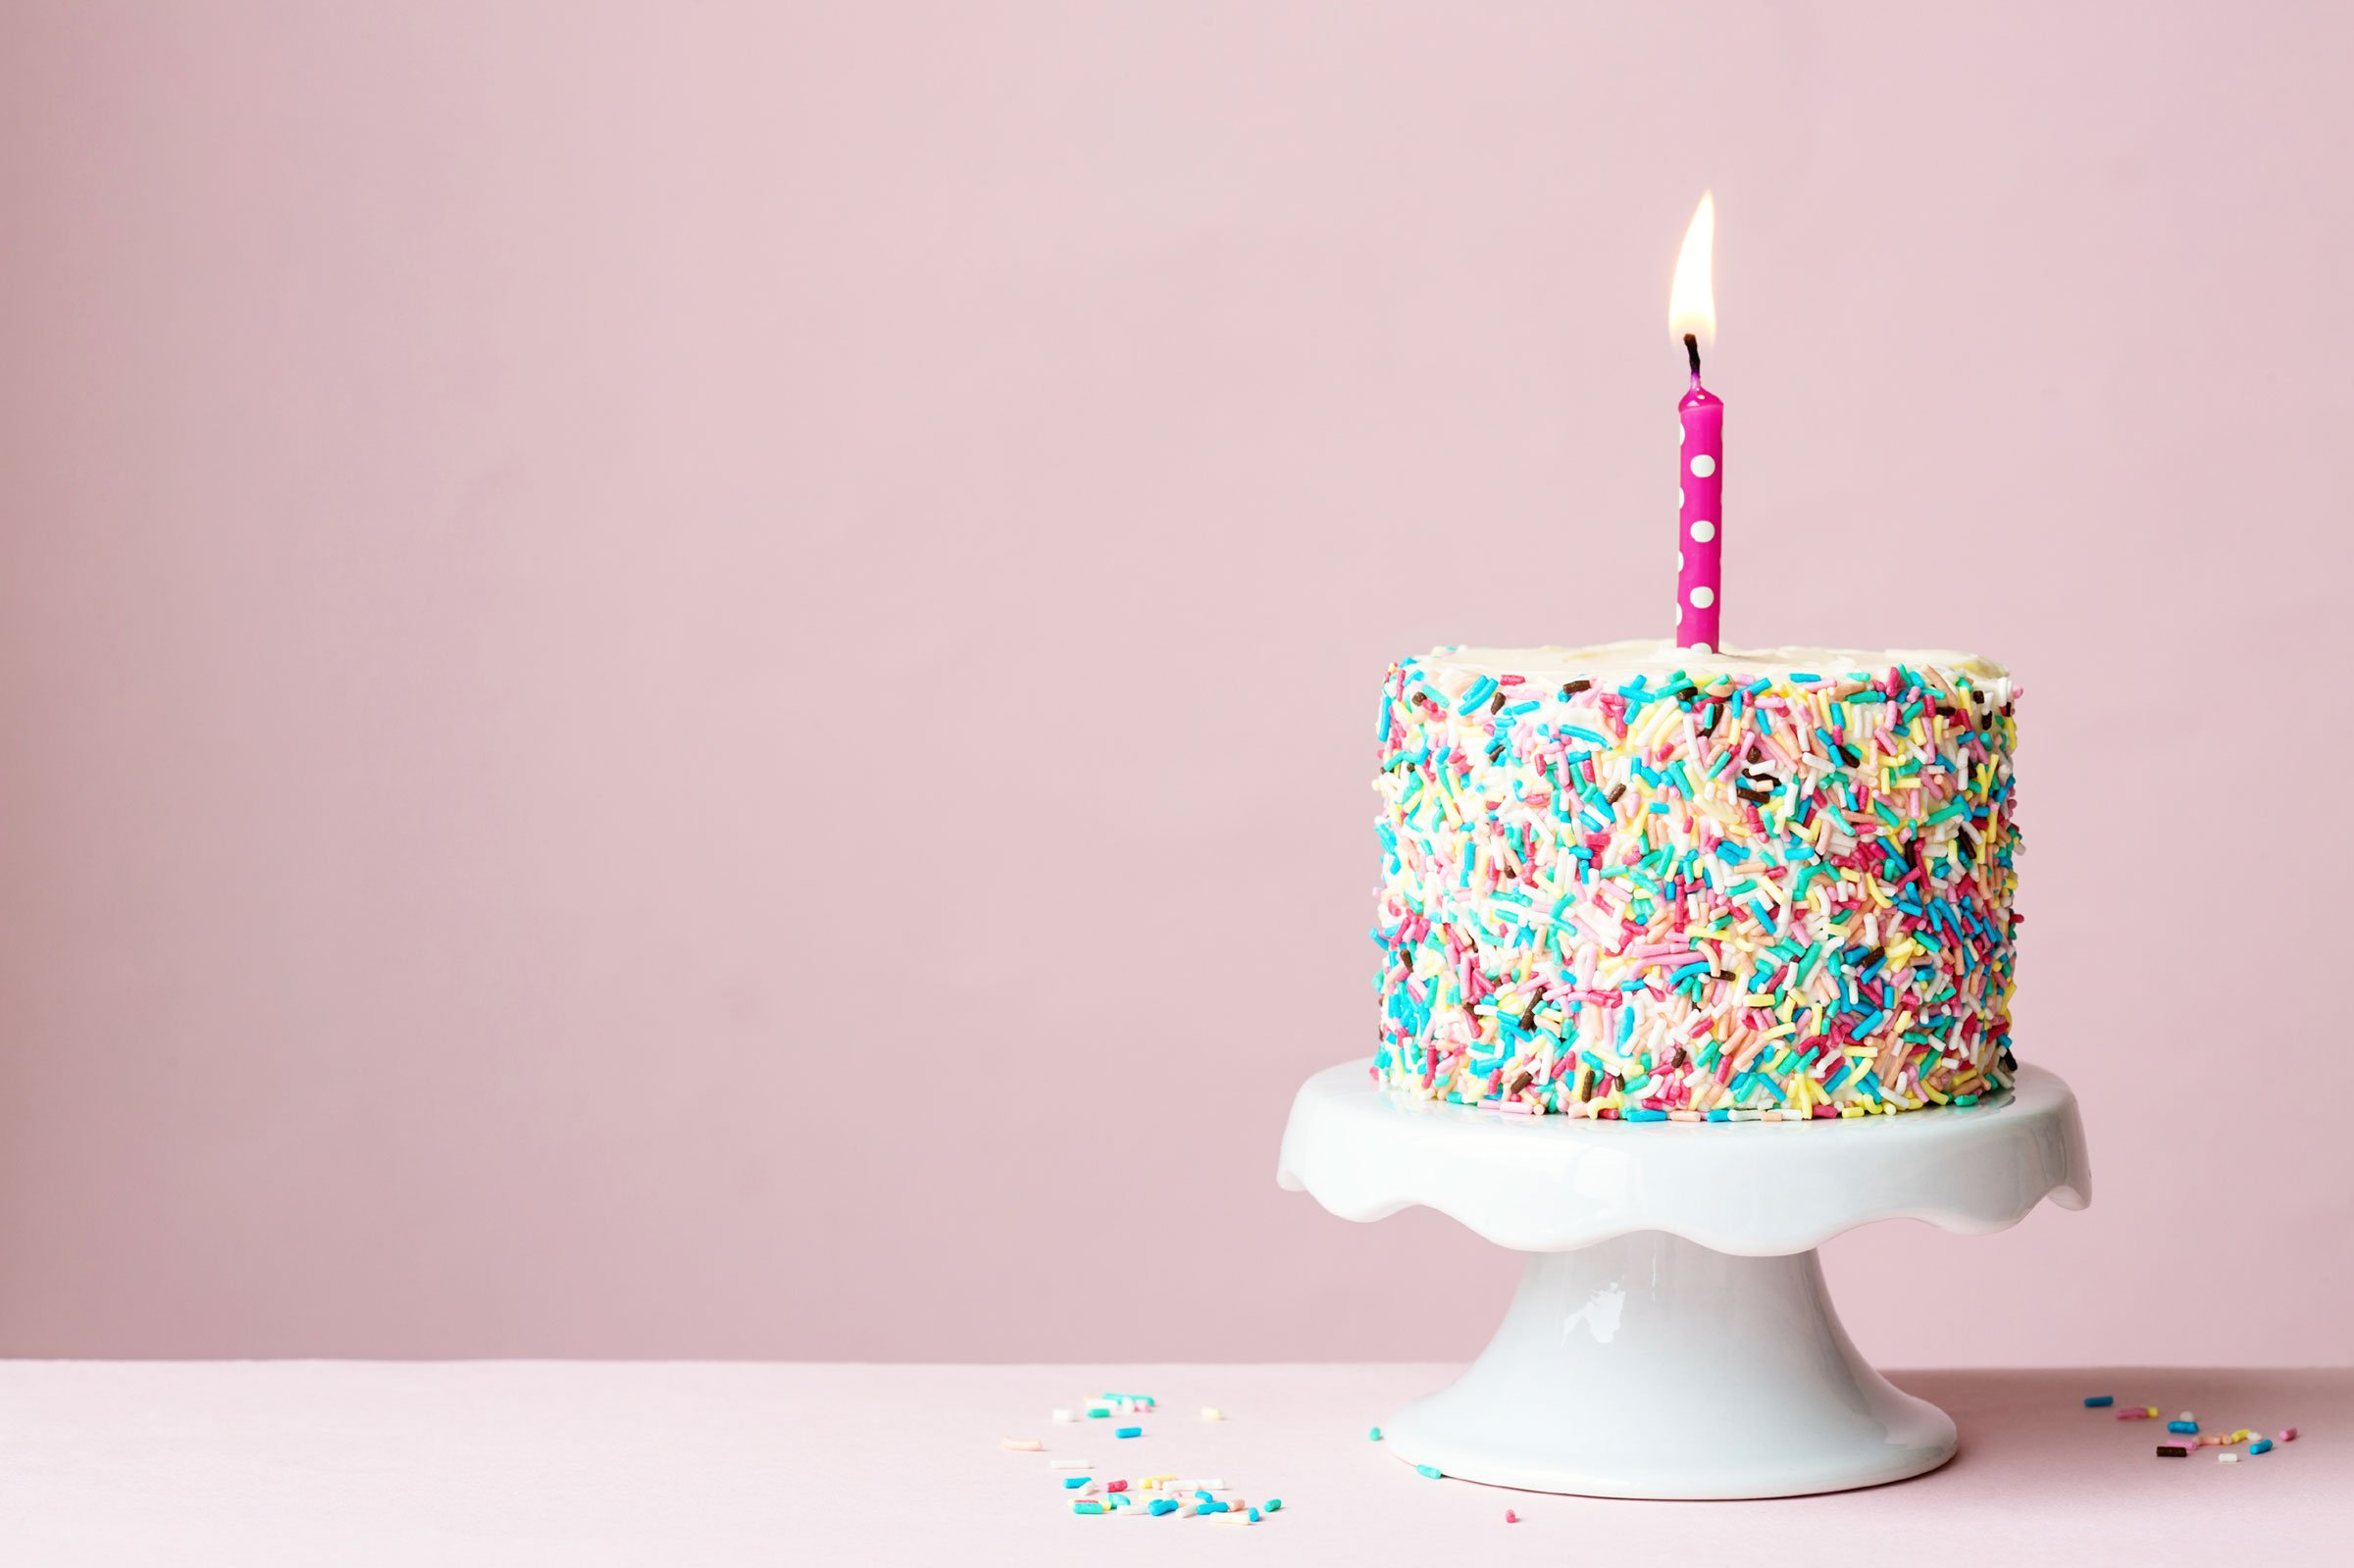 happy birthday happy birthday to you ; 01-happy-birthday-facts-cake